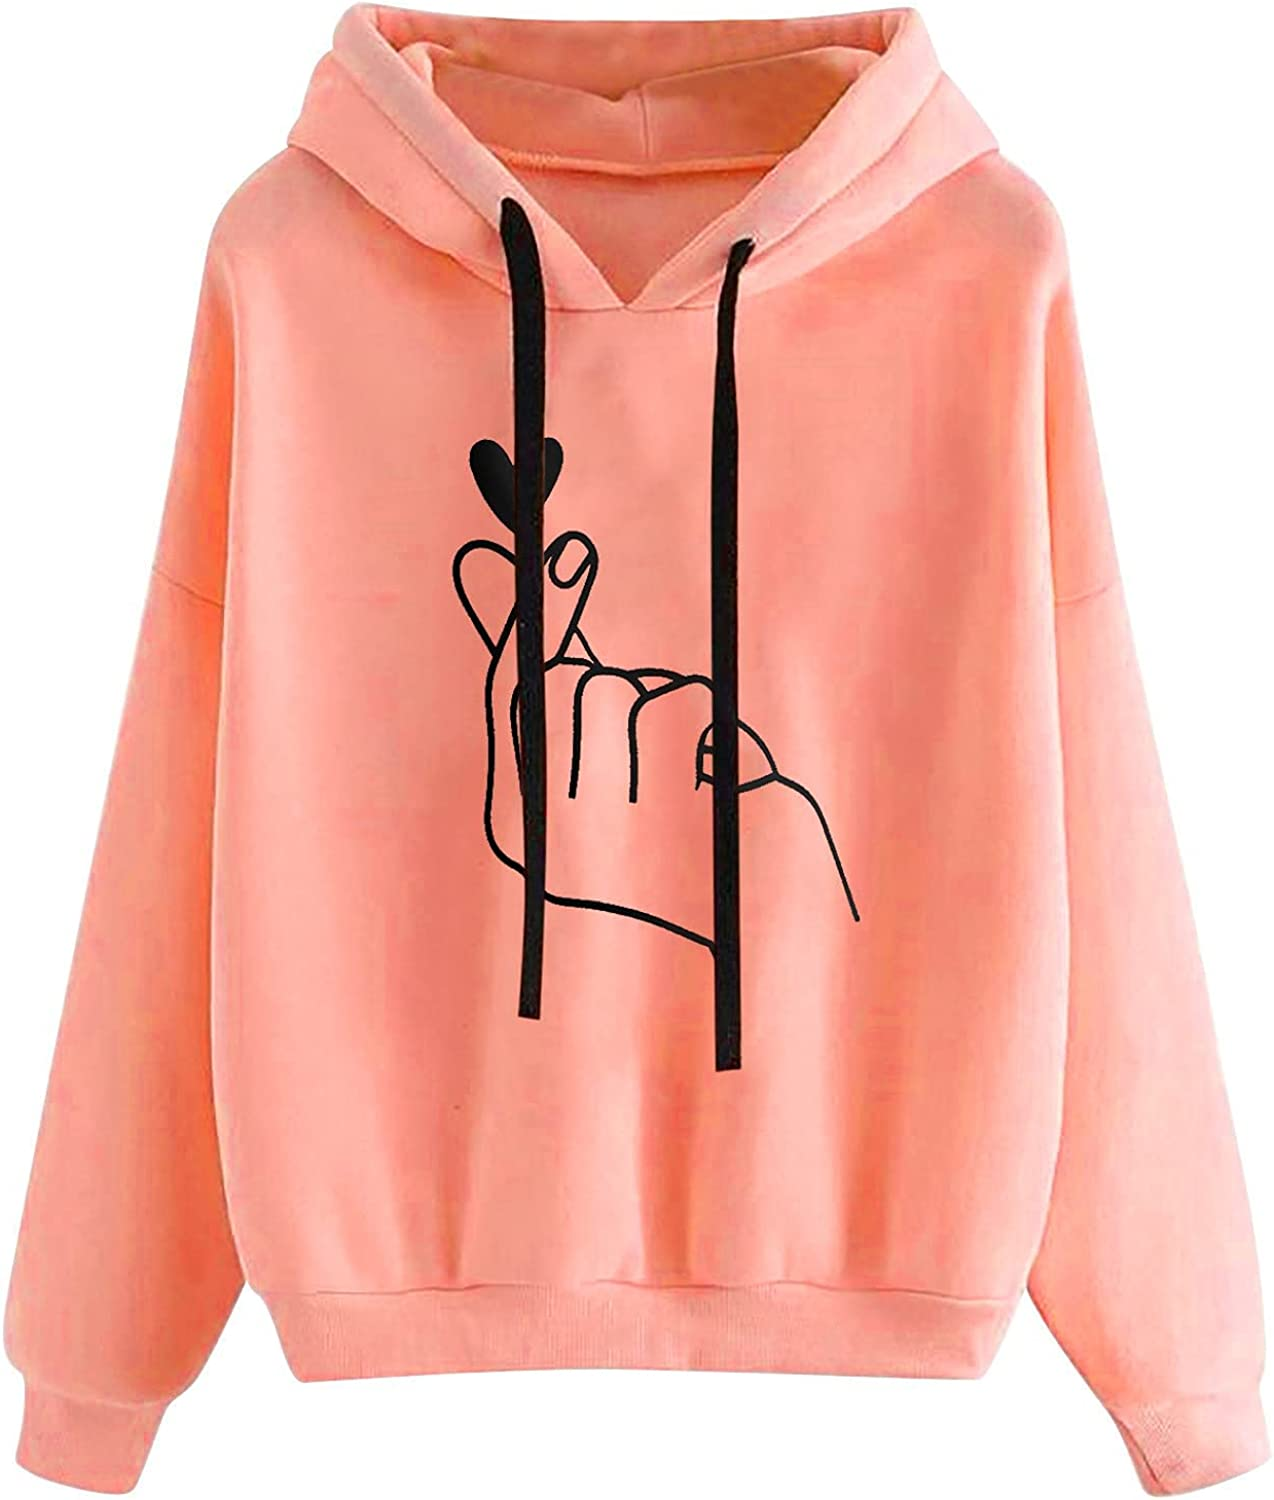 Women Cute Solid Hoodies Long Sleeve Round Neck Loose Casual Fal